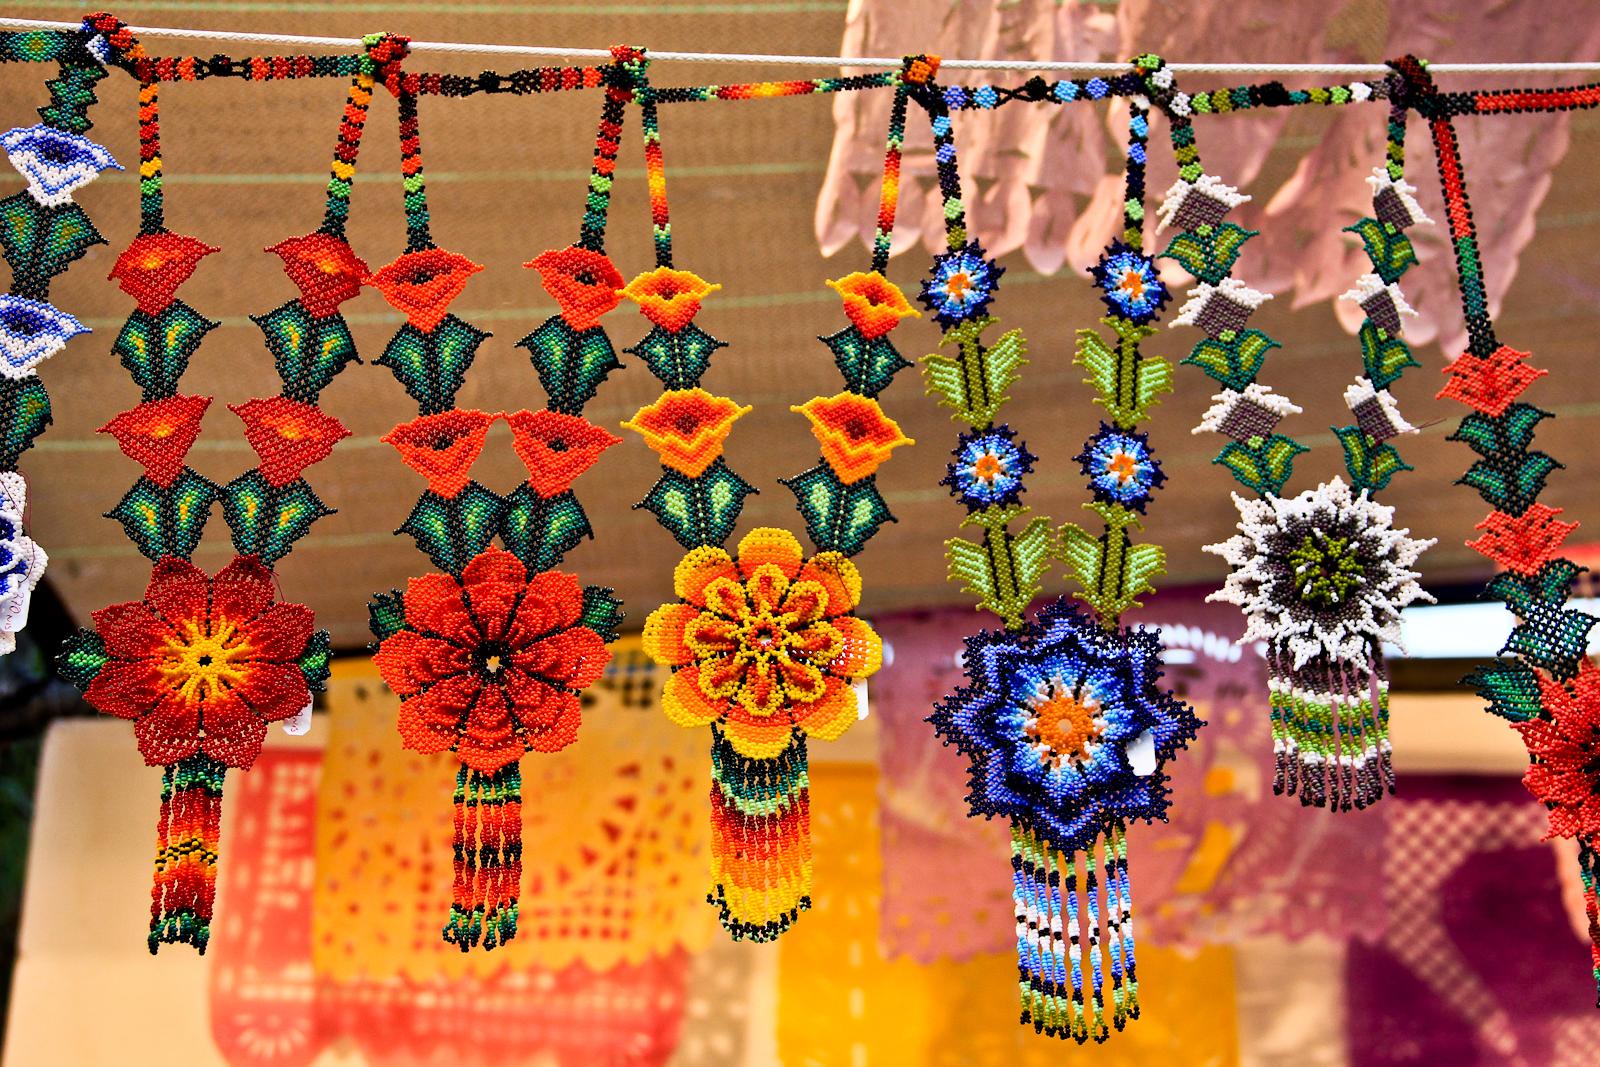 Mexican beadwork on display at the International Arts and Crafts Fair in Jerusalem. Photo by Avital Pinnick